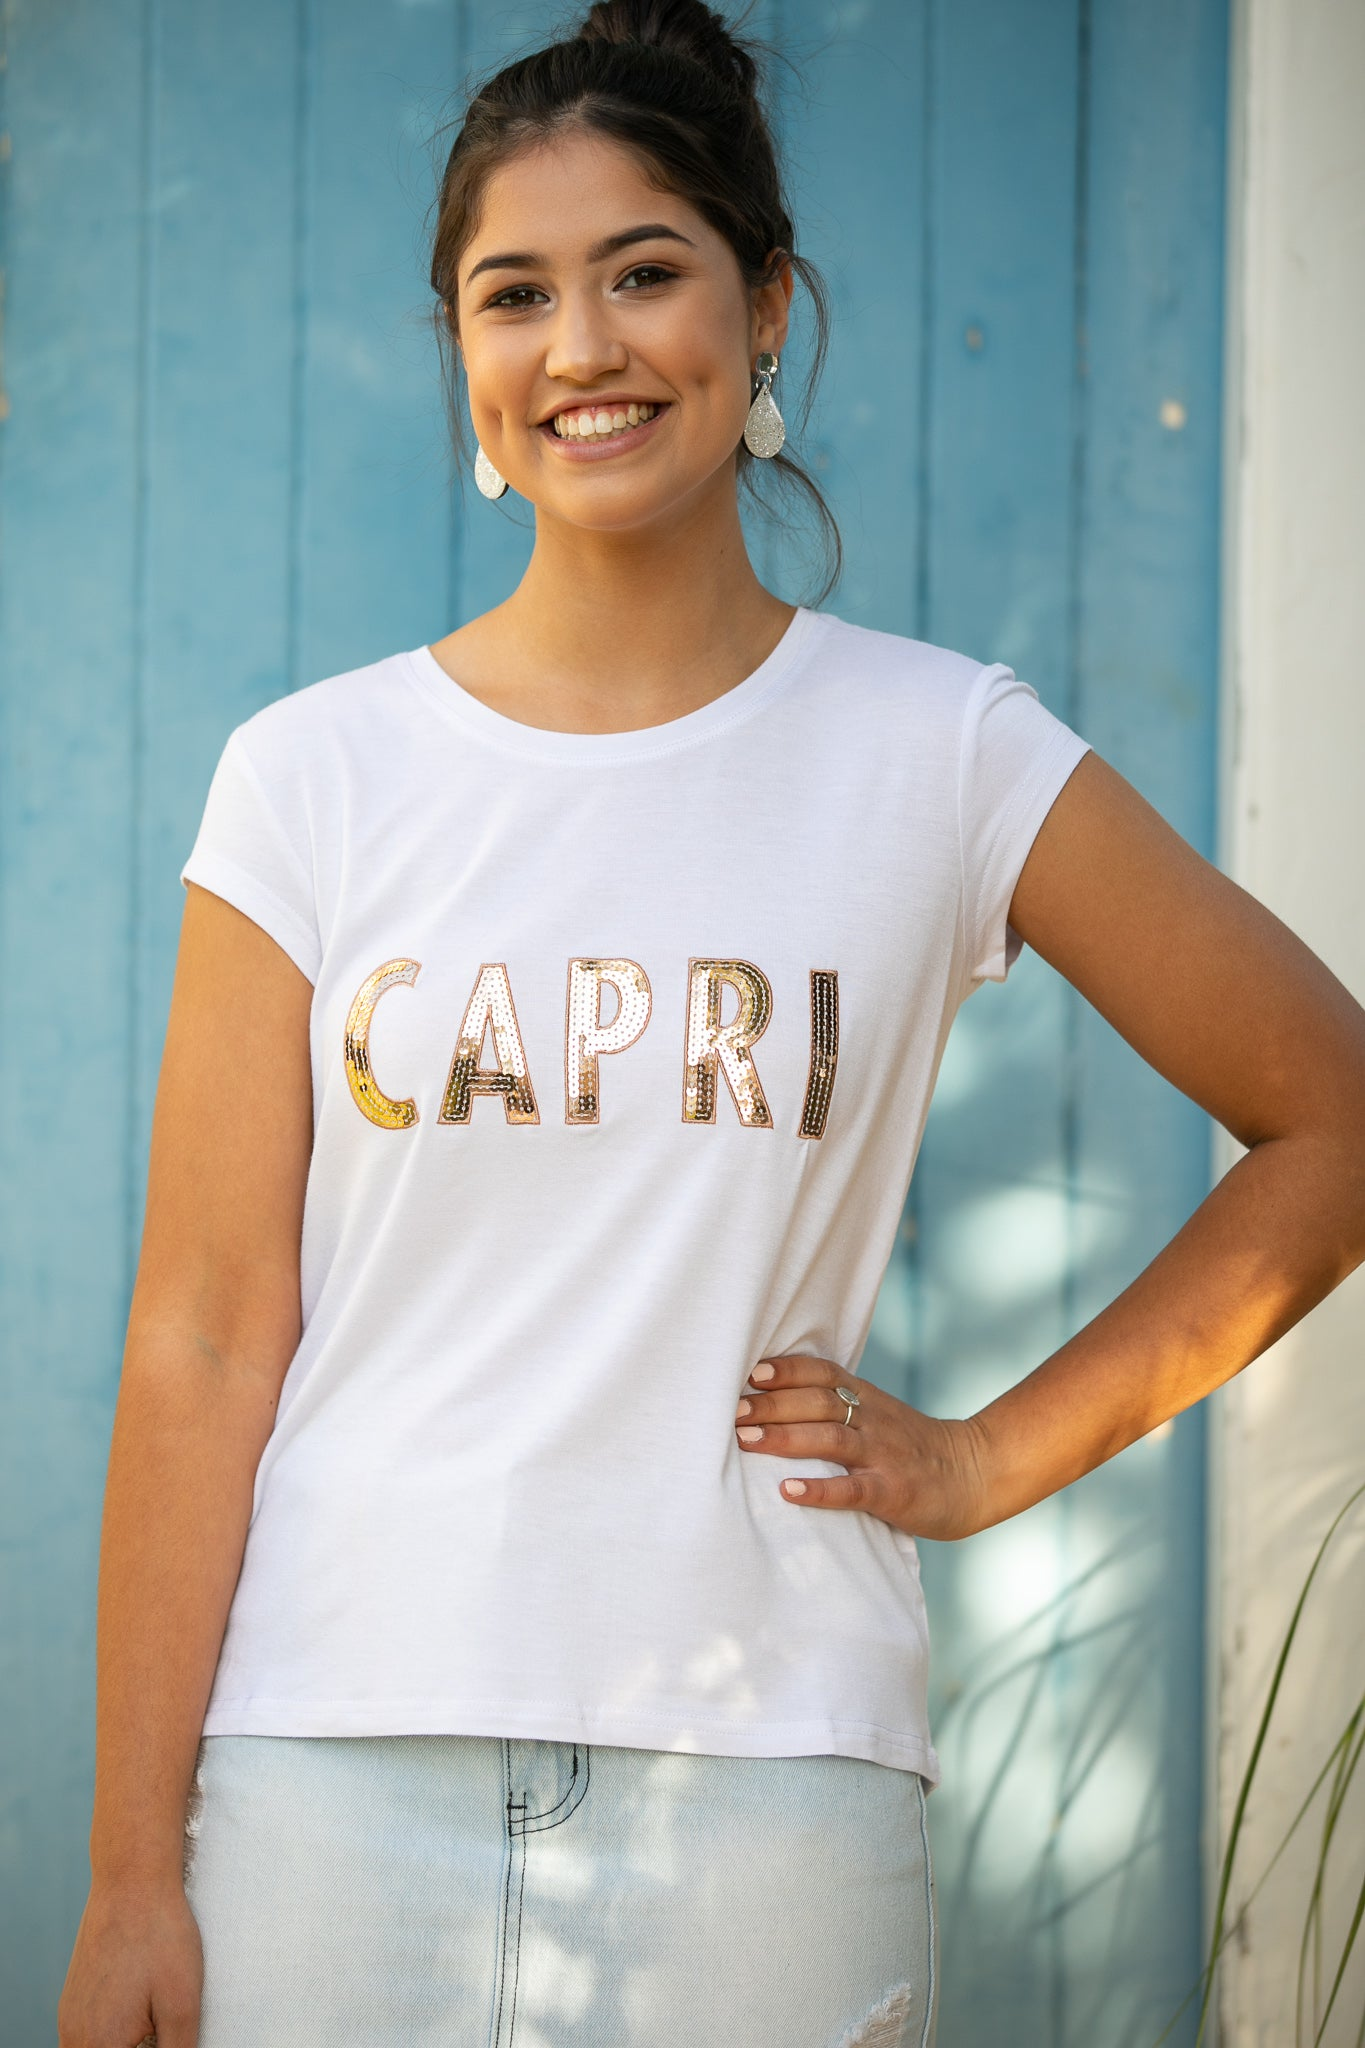 Capri Tee in White